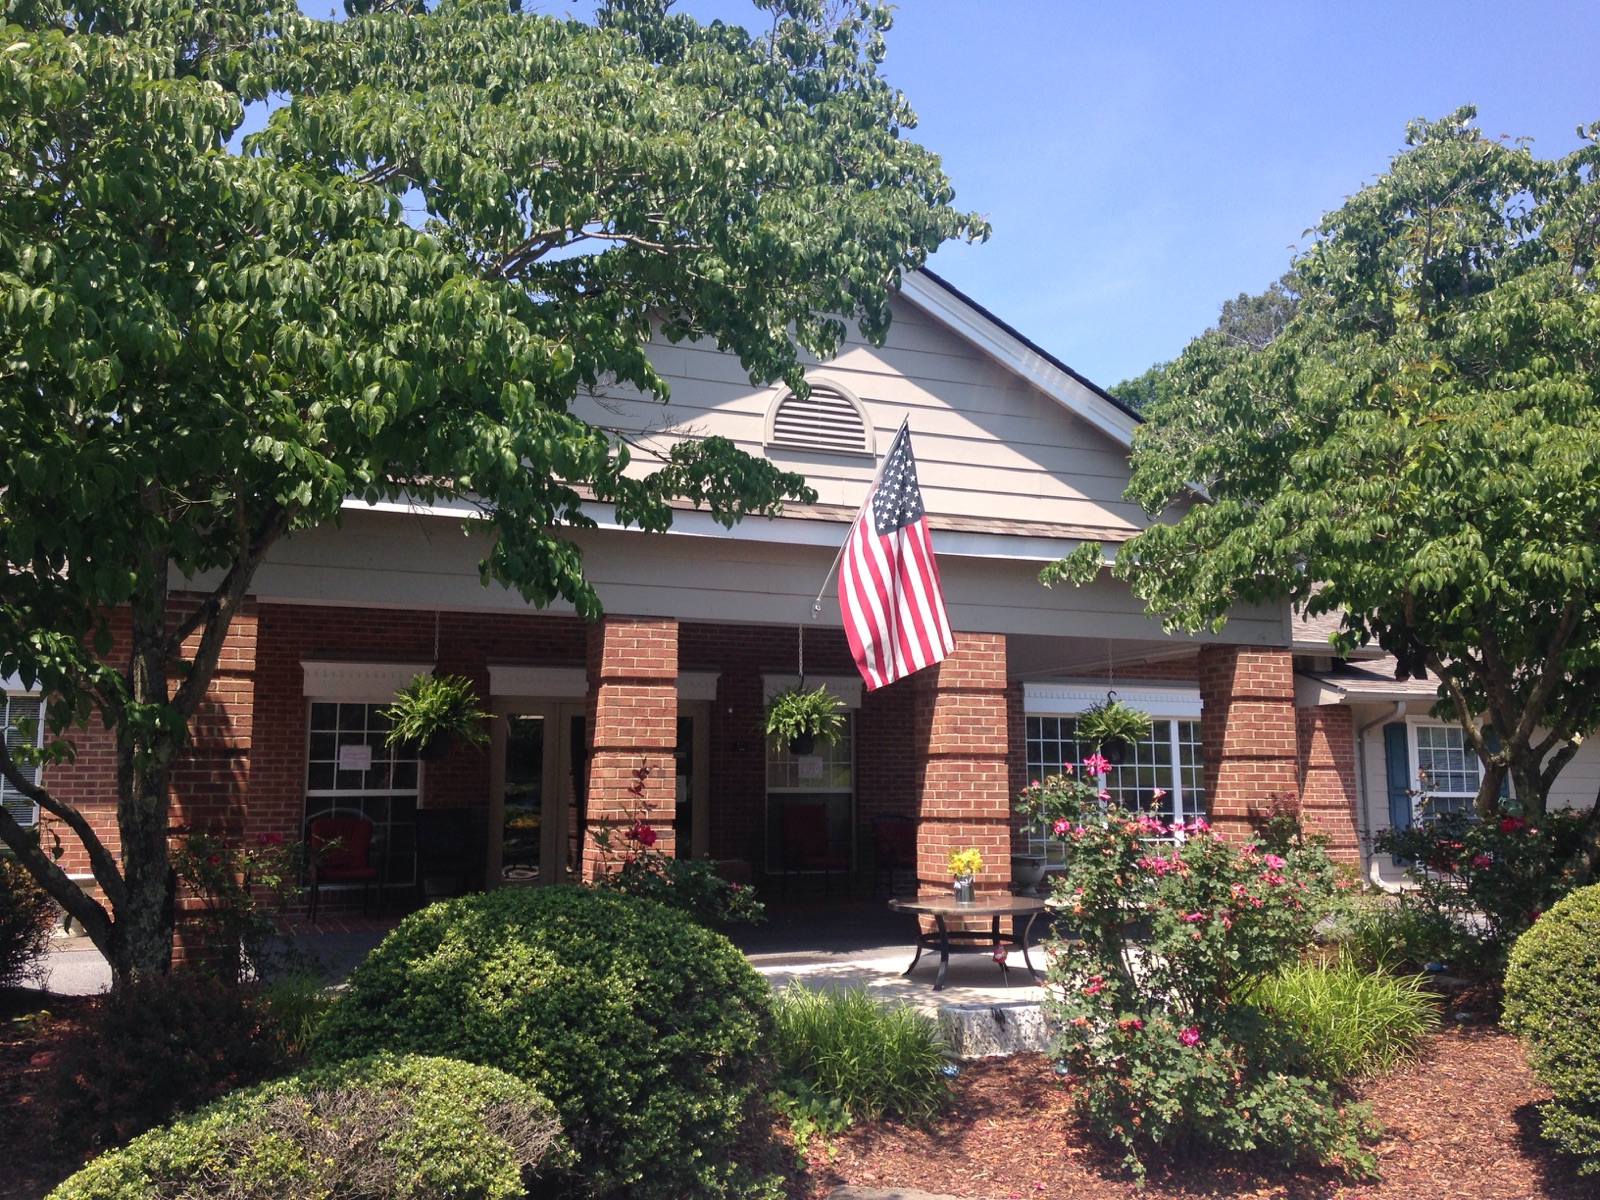 Crown Cypress Assisted Living - staff